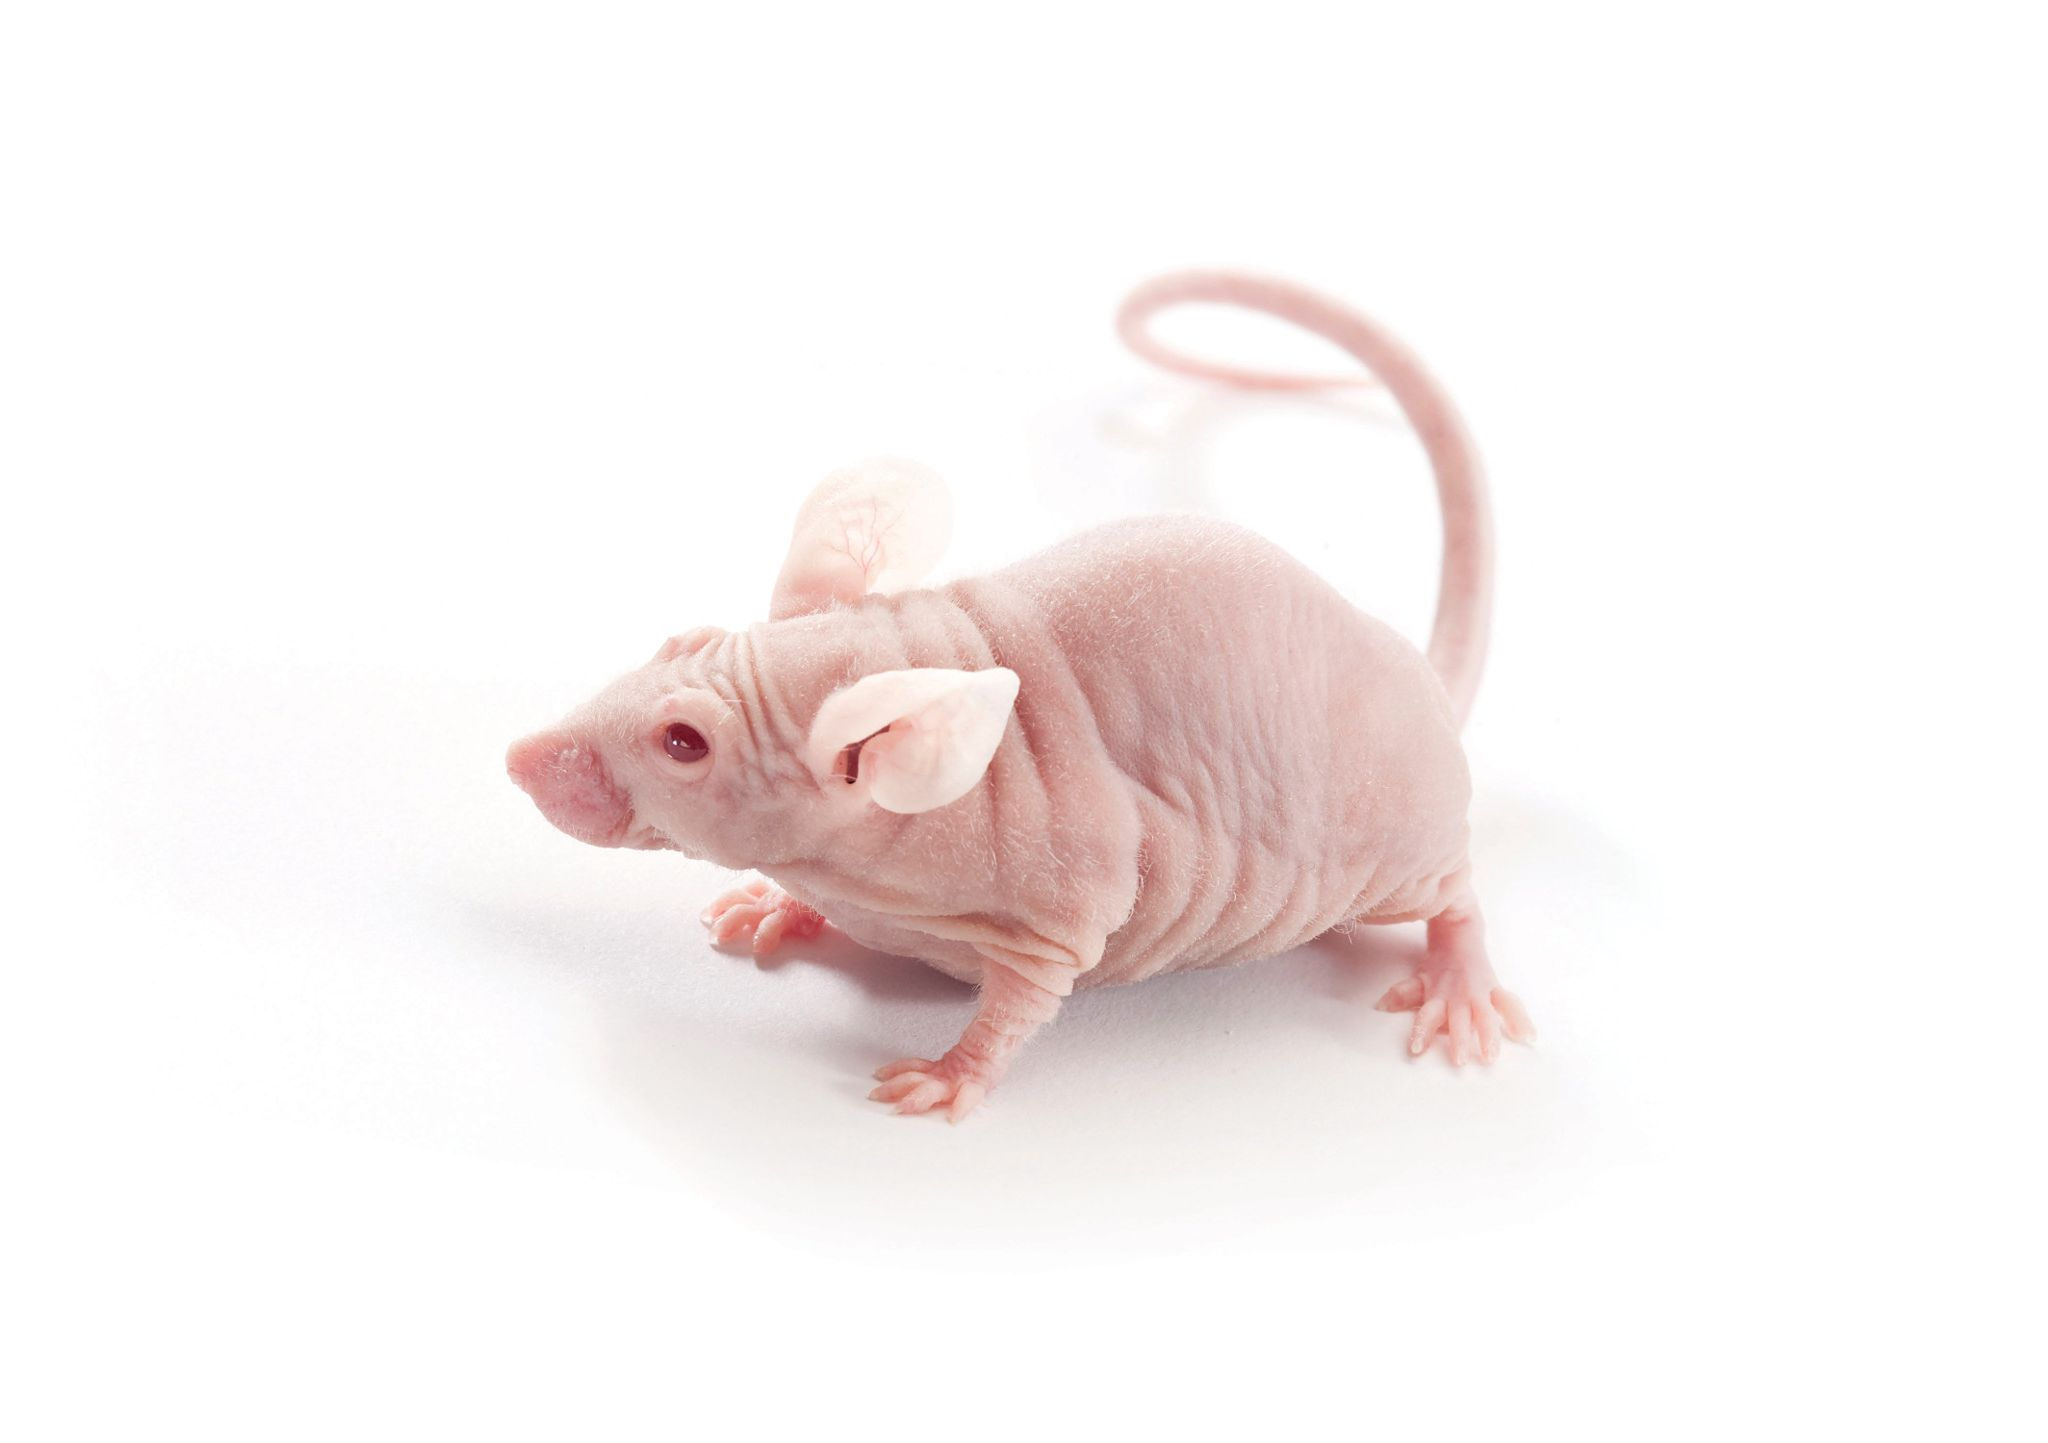 immunodeficient mouse